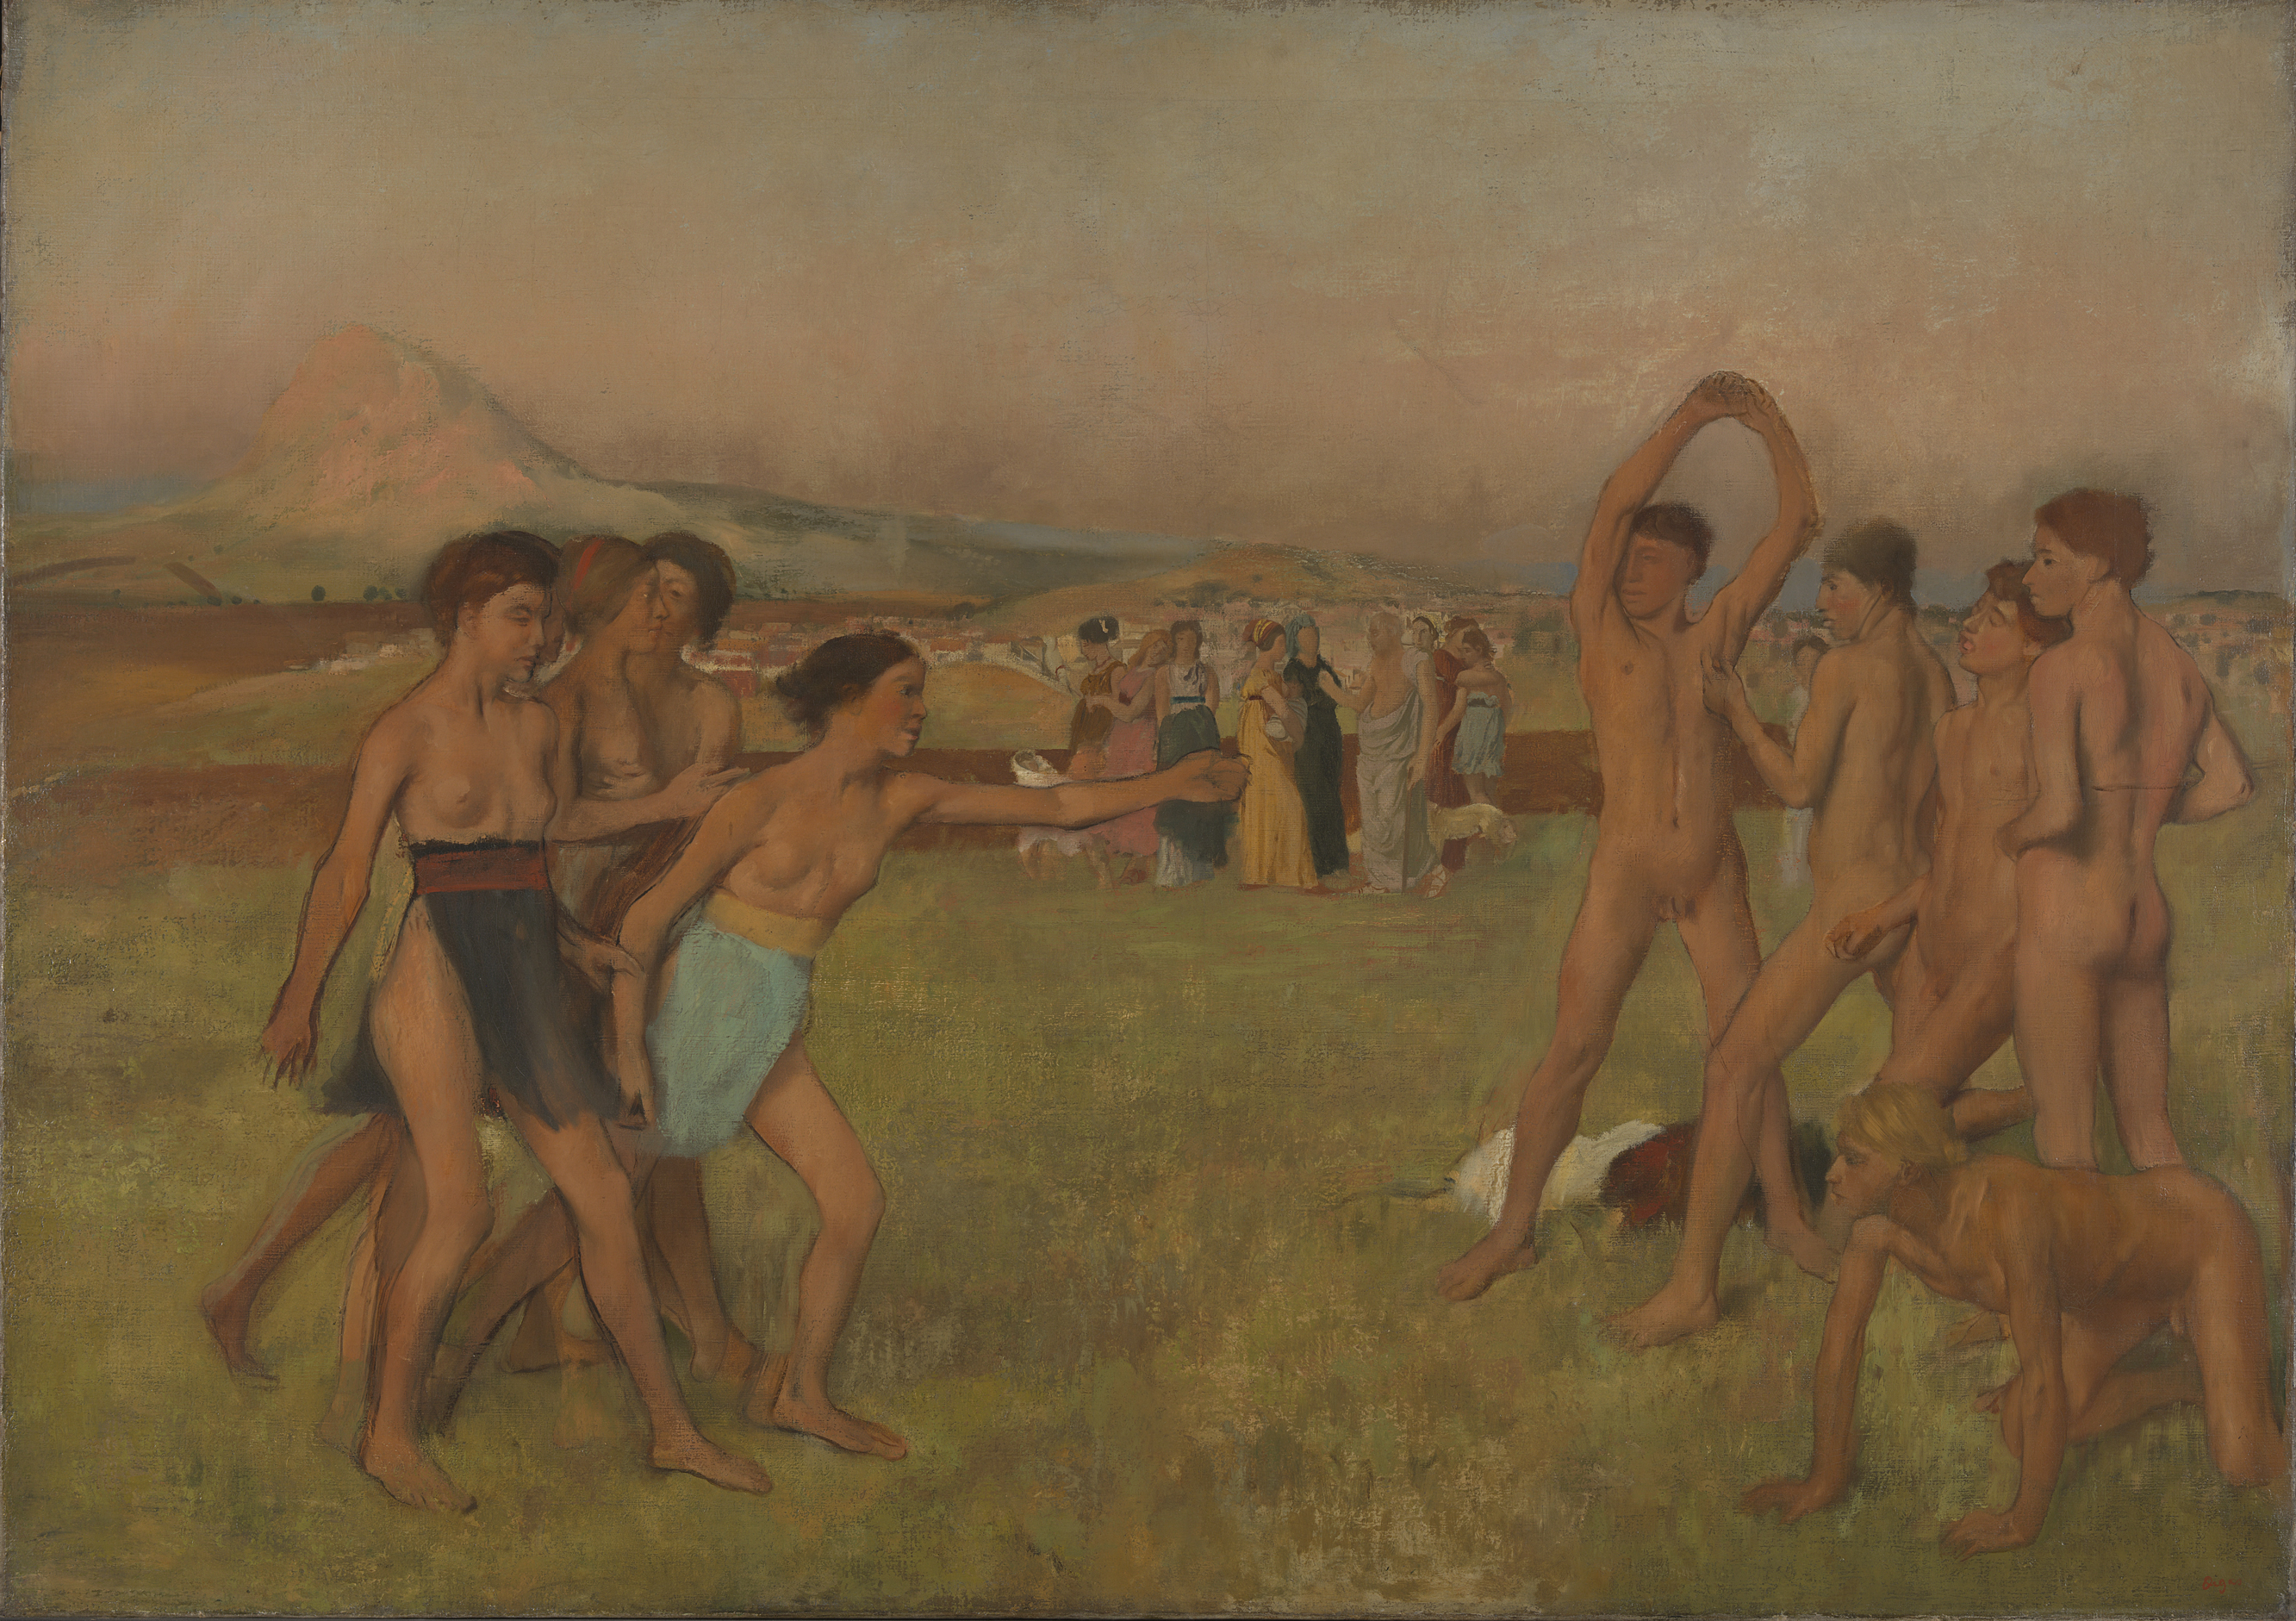 Young Spartans Exercising - Hilaire-Germain-Edgar Degas about 1860